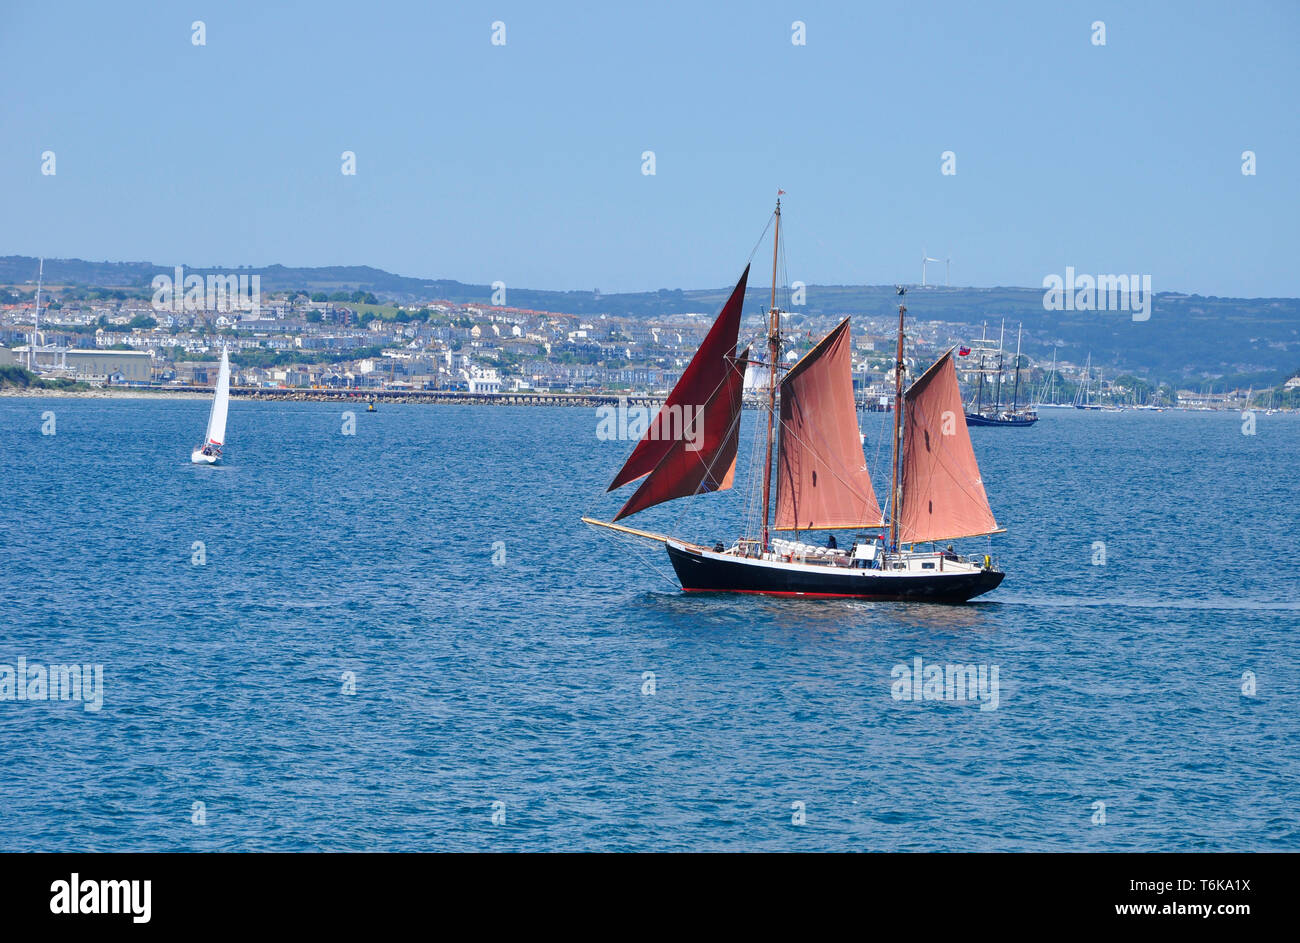 Two masted schooner with red sails in Carrick Roads off Falmouth in Cornwall, England,UK - Stock Image